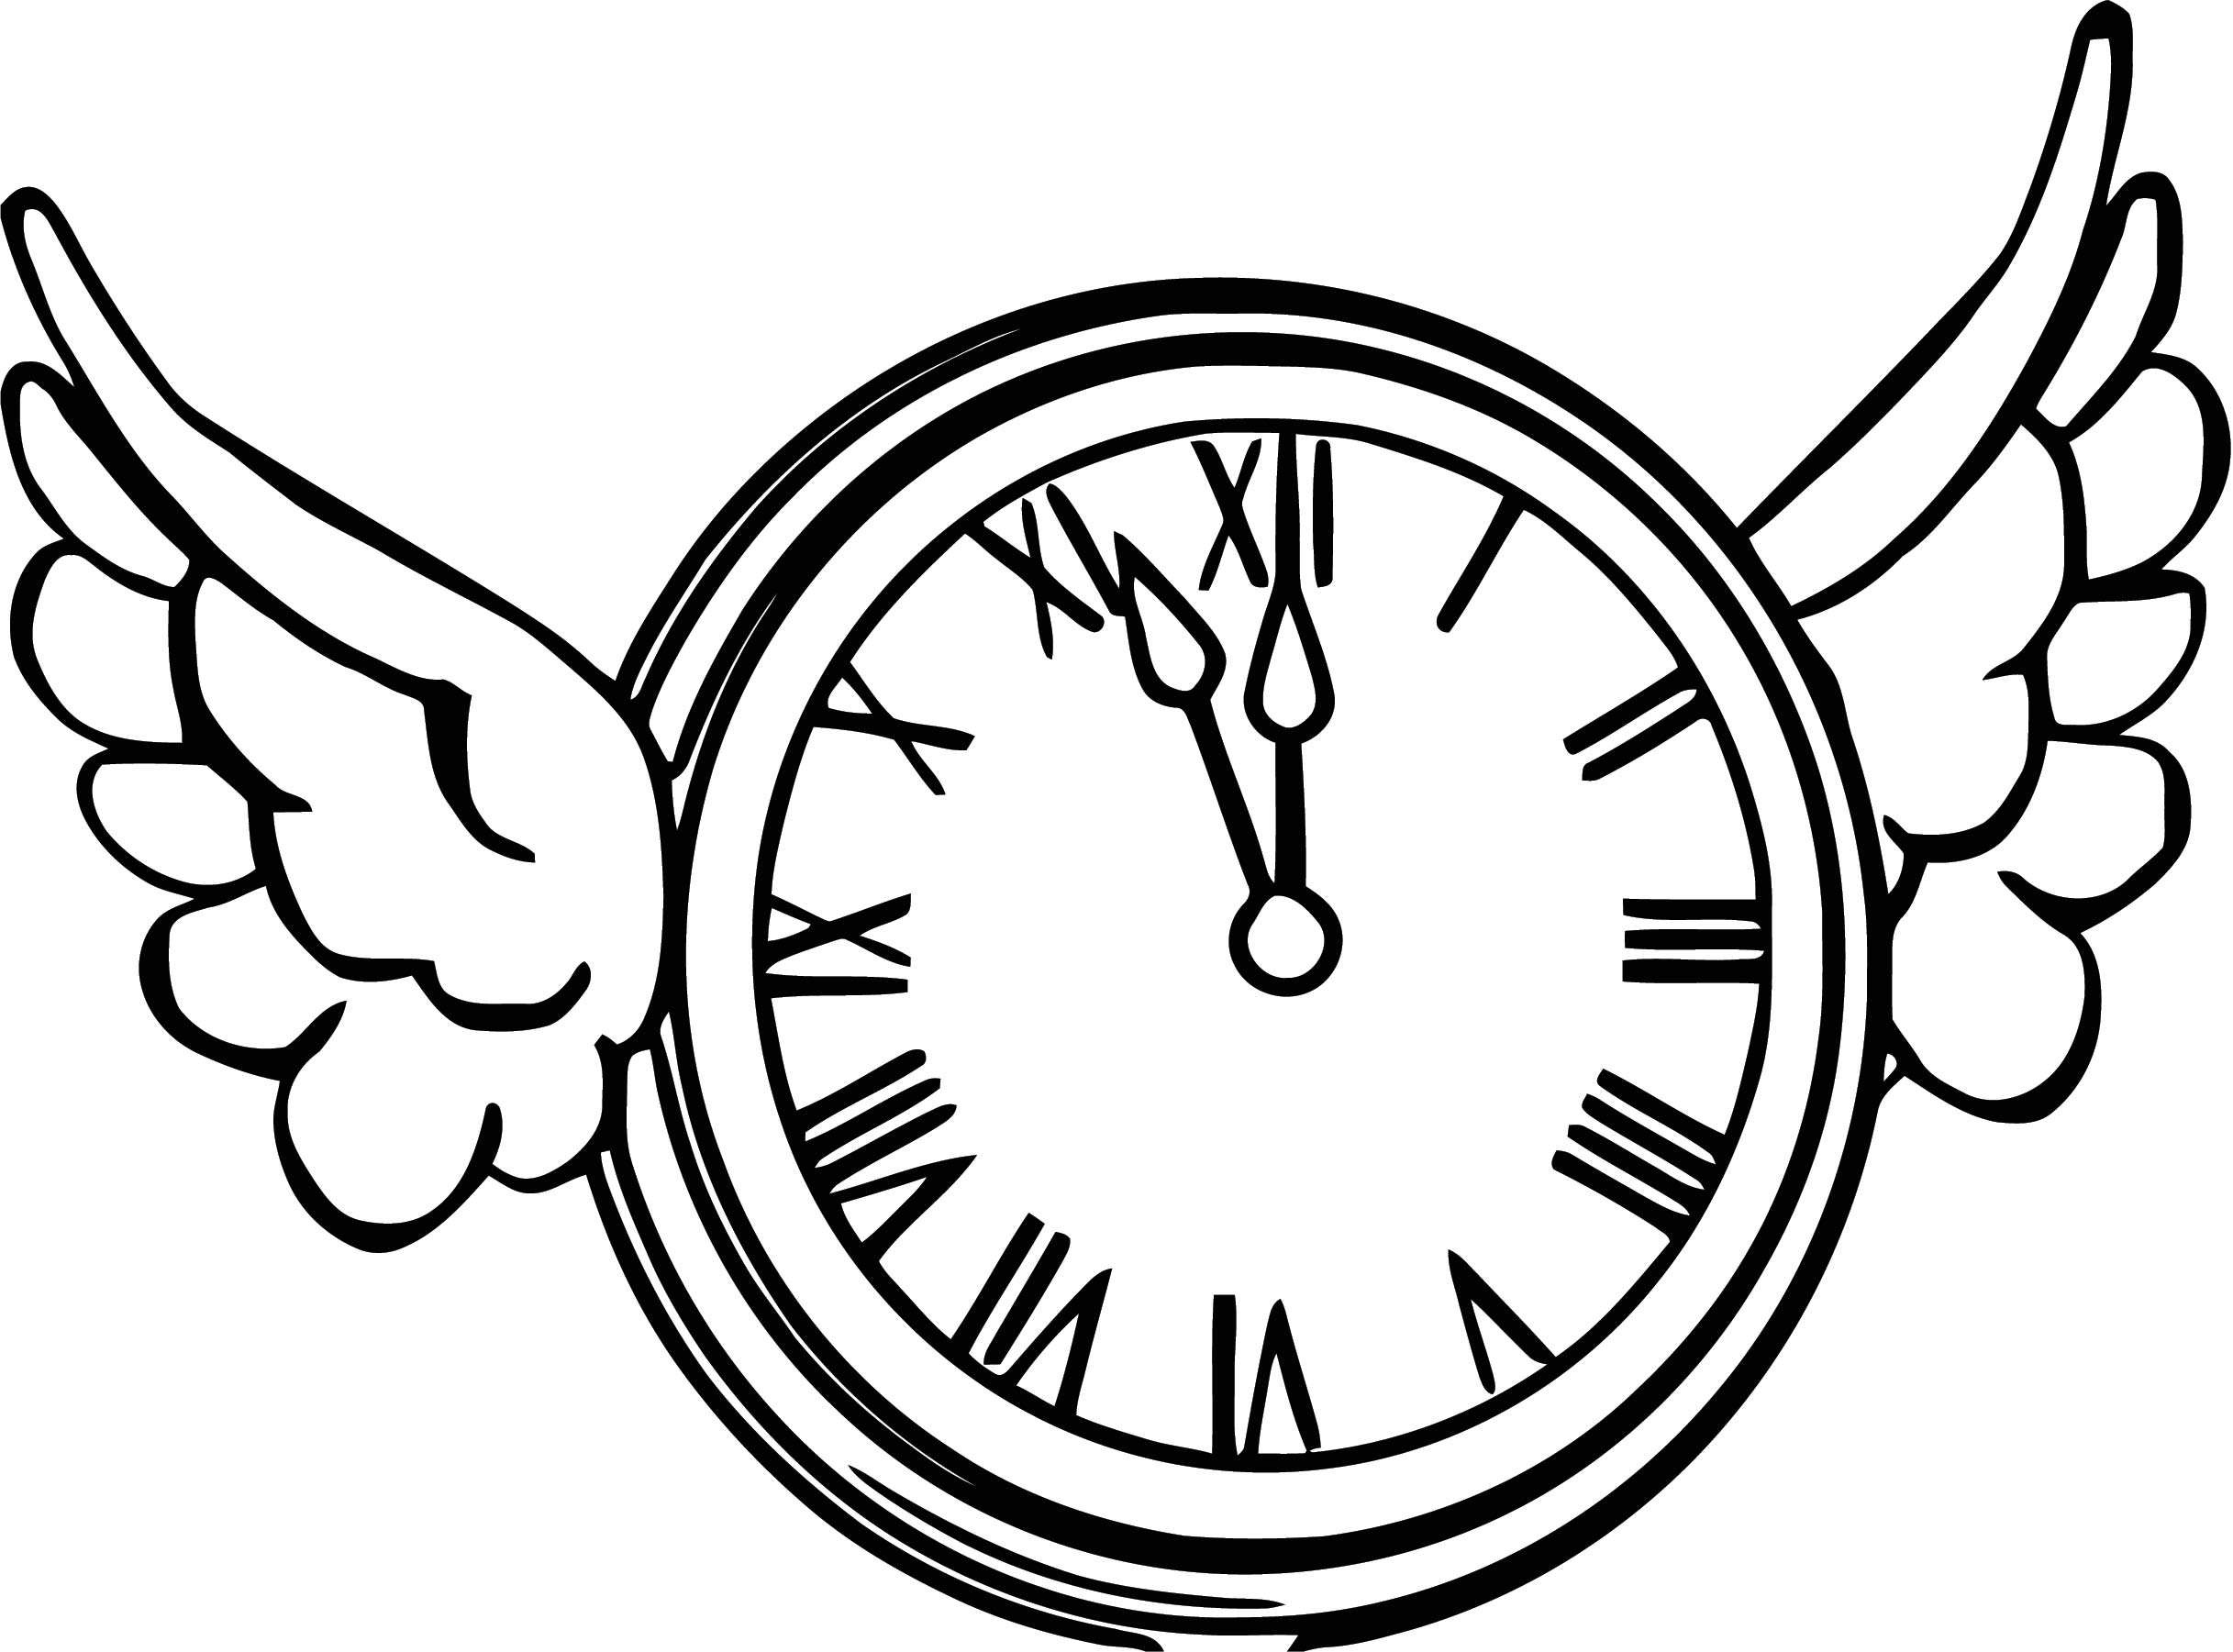 Flying Clock Clipart Free Printable 1 Cartoonized Free Printable.